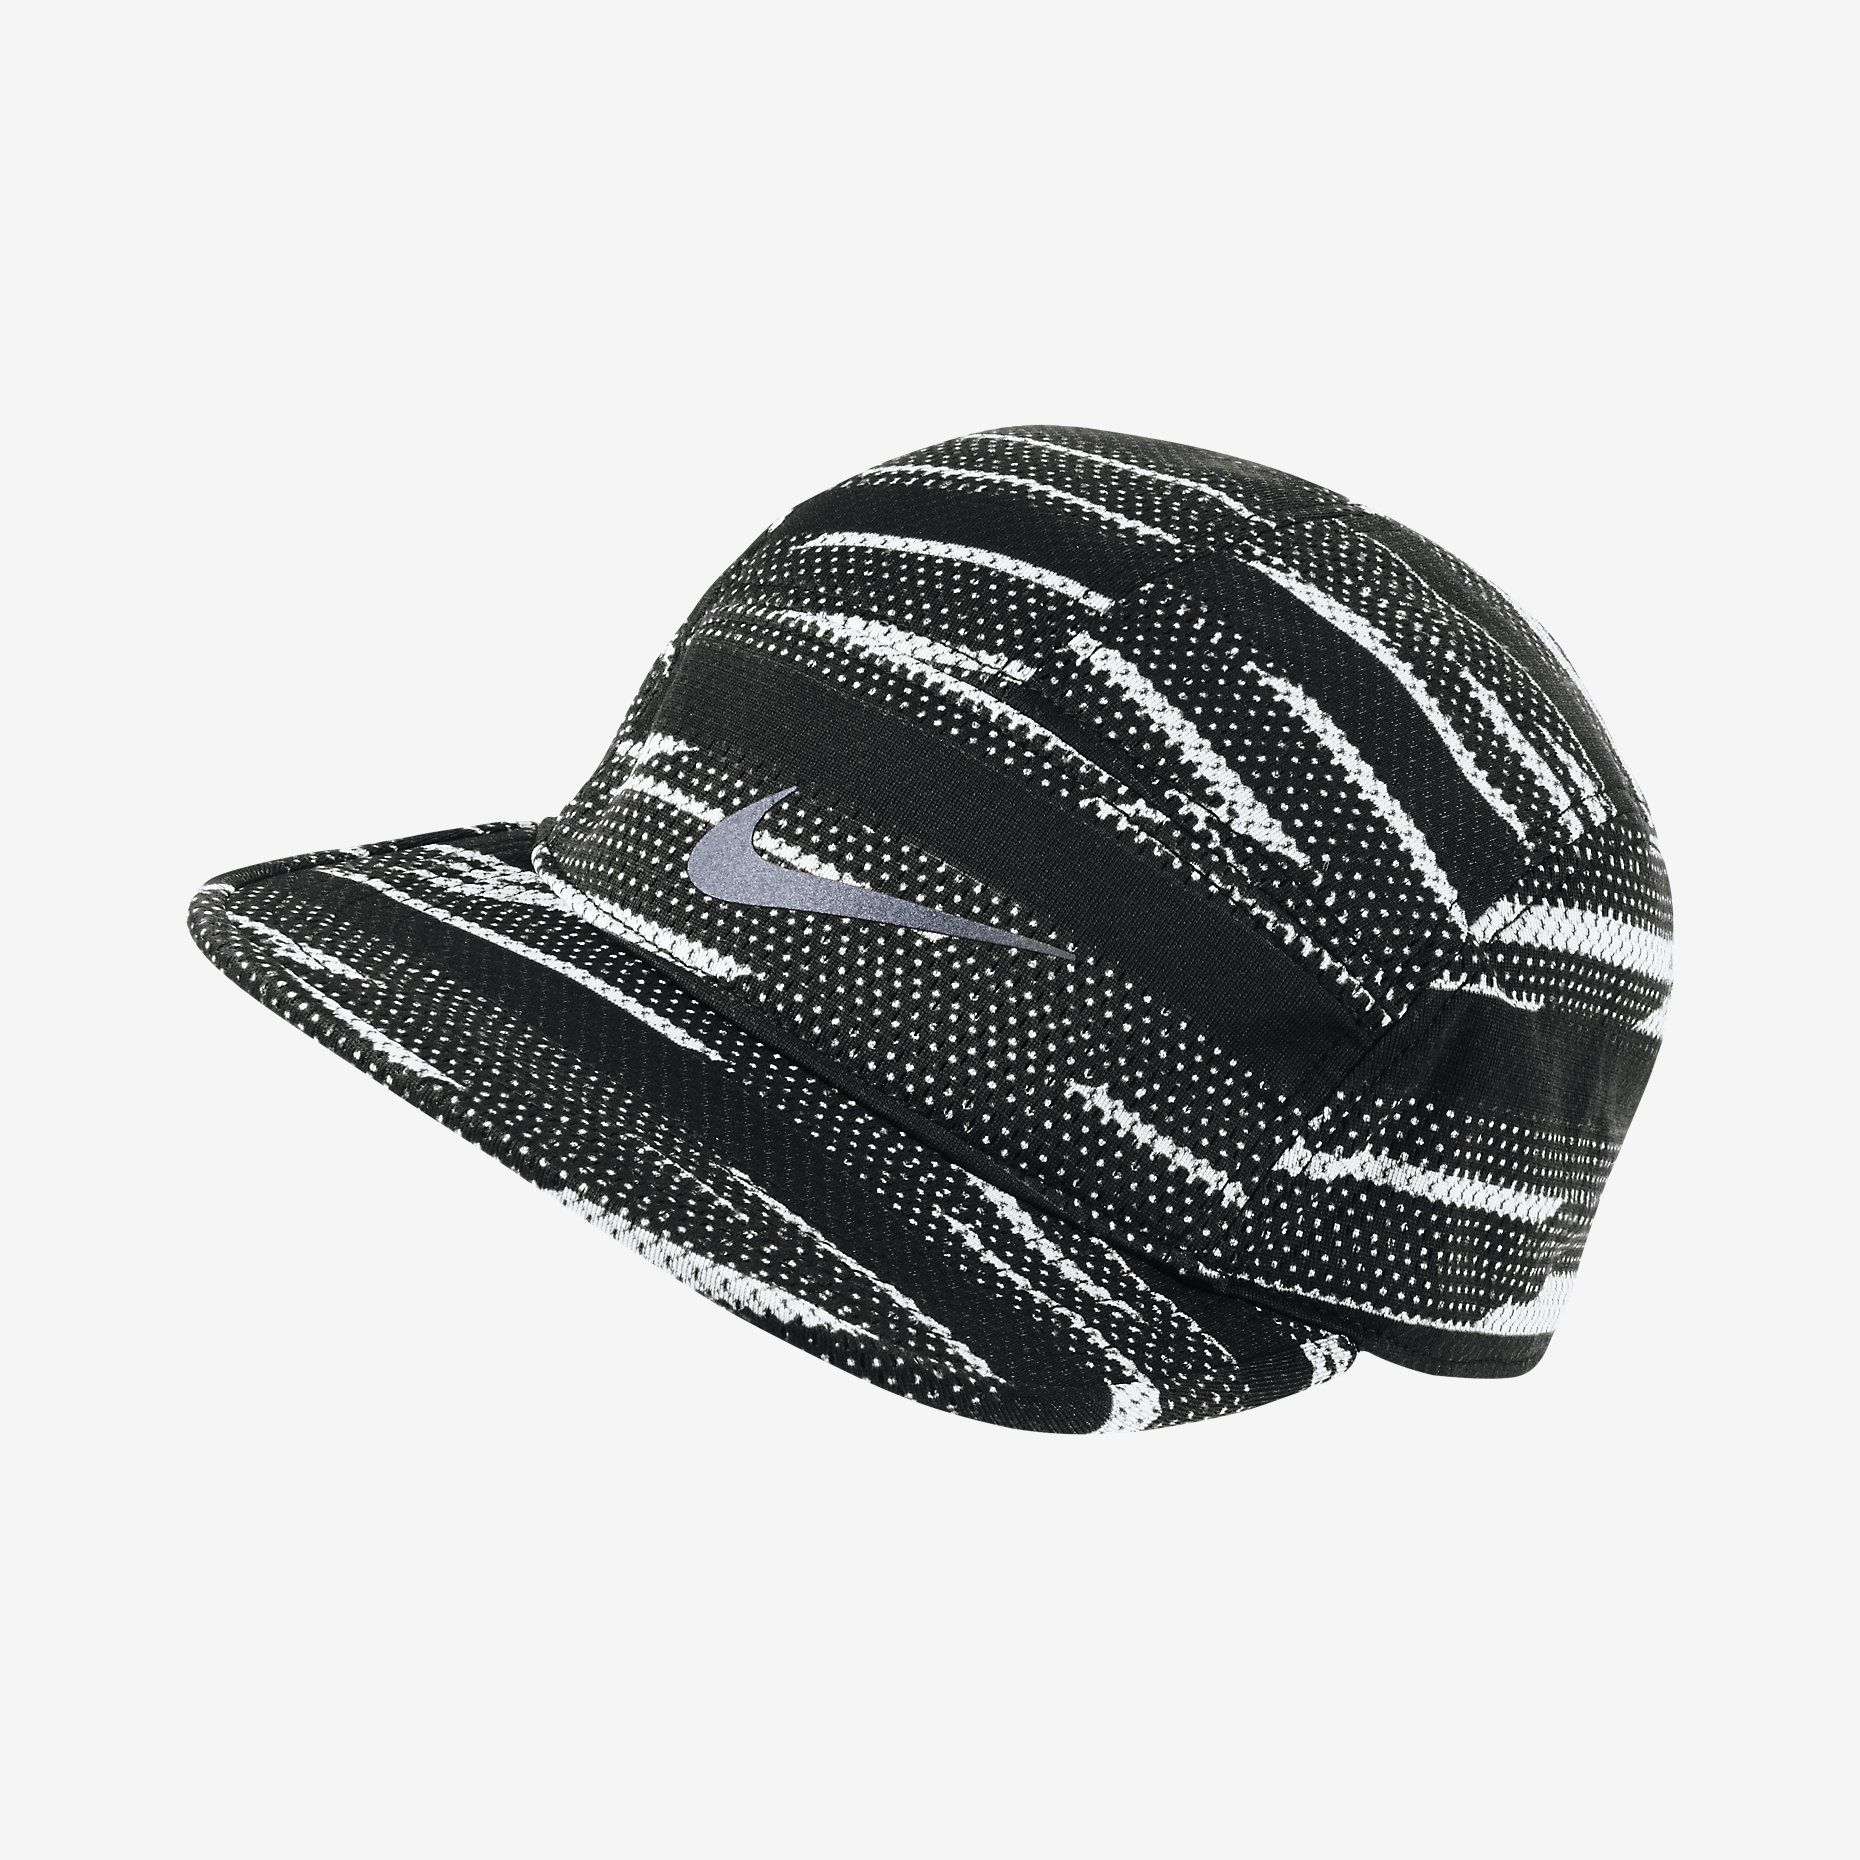 Nike Graphic Cap Headwear at Road Runner Sports